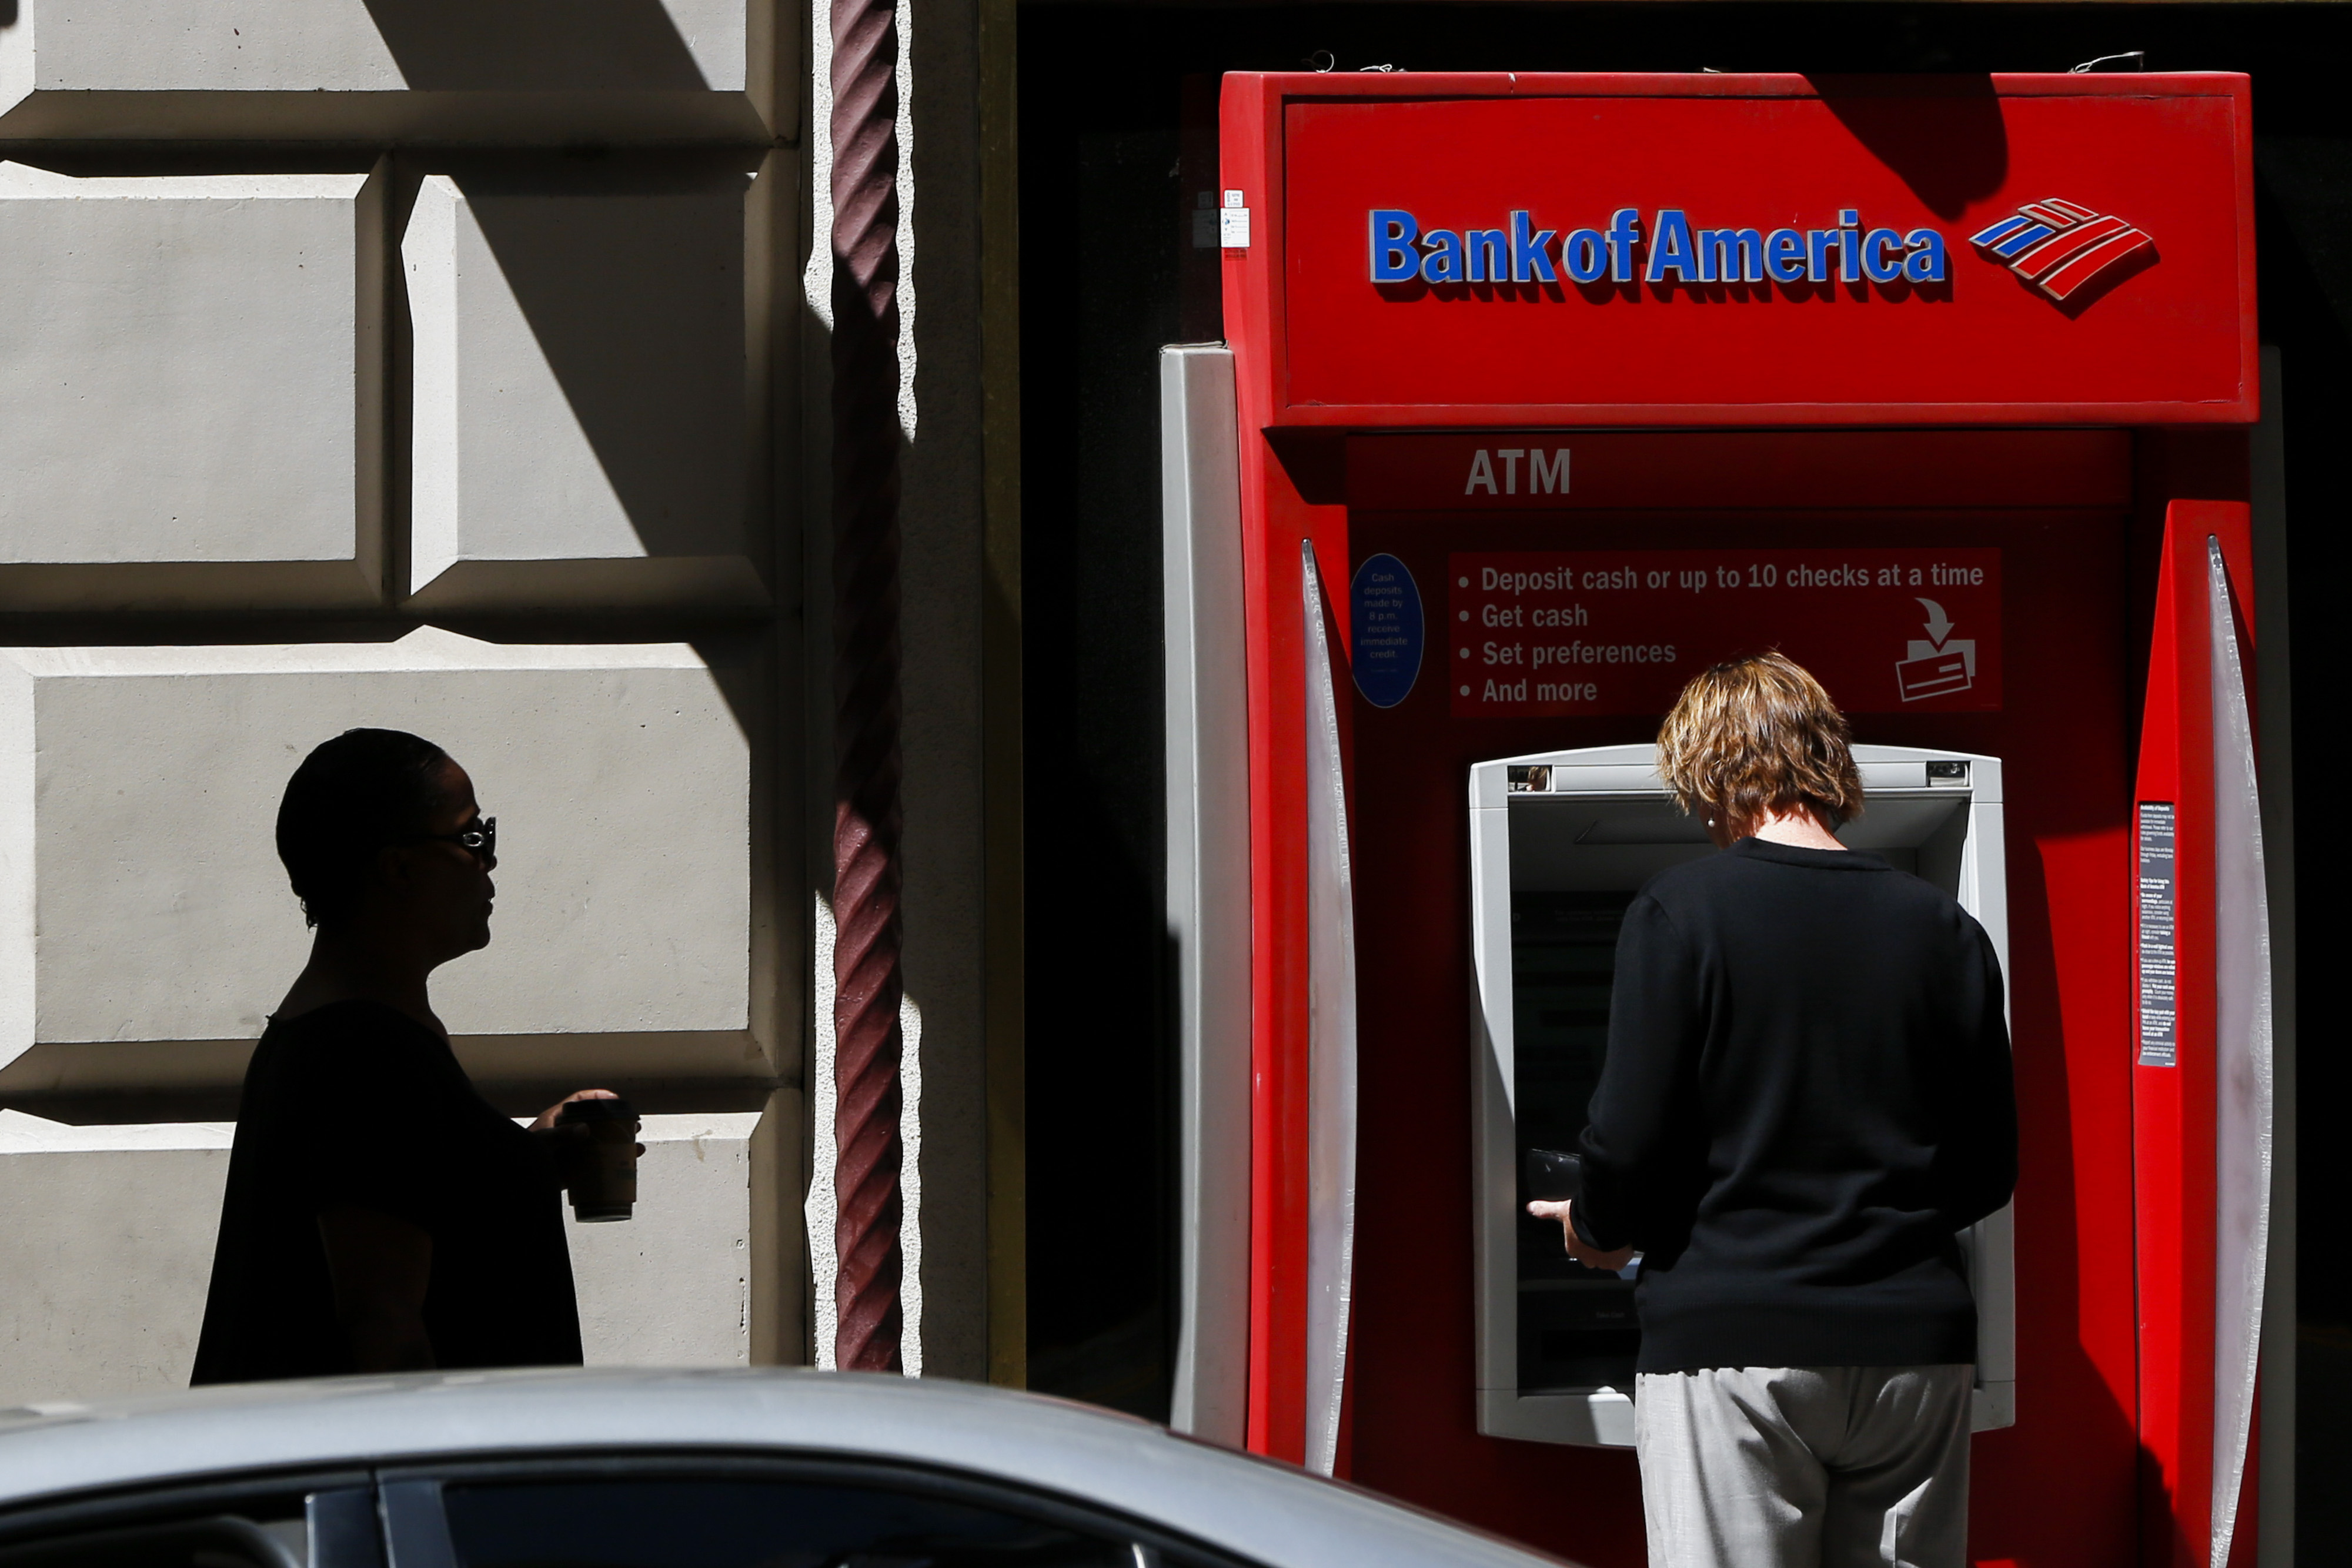 A woman uses a a Bank of America Corp. ATM outside of a branch in Los Angeles, California, U.S., on Monday, July 13, 2015. Photographer: Patrick T. Fallon/Bloomberg